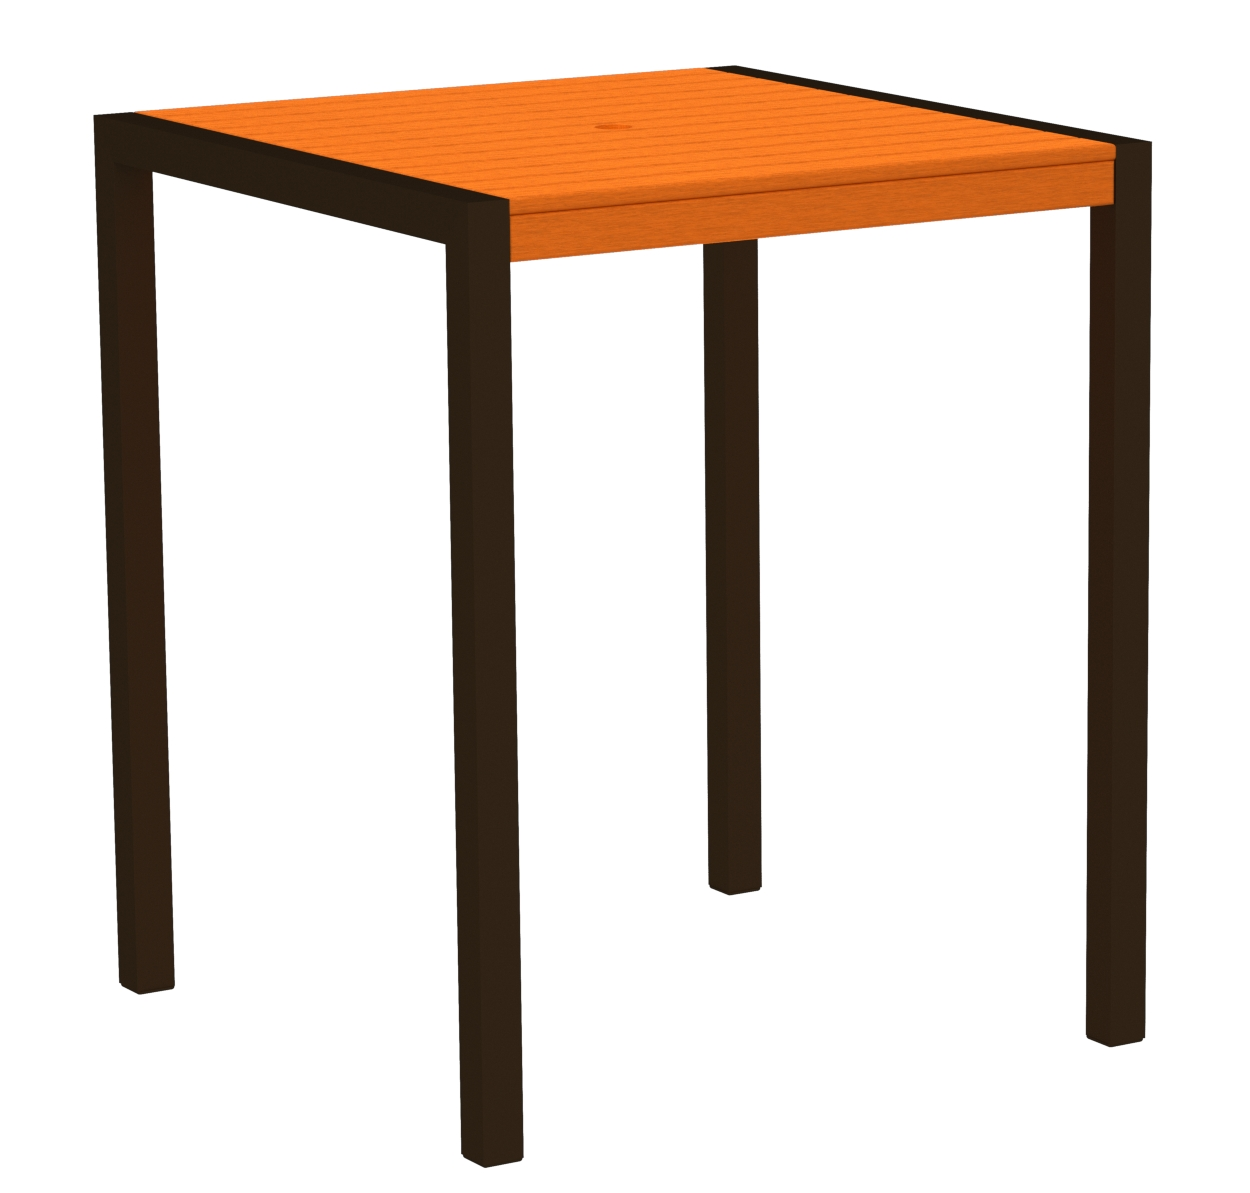 POLYWOOD 8102-16TA MOD 36' Bar Table in Textured Bronze / Tangerine